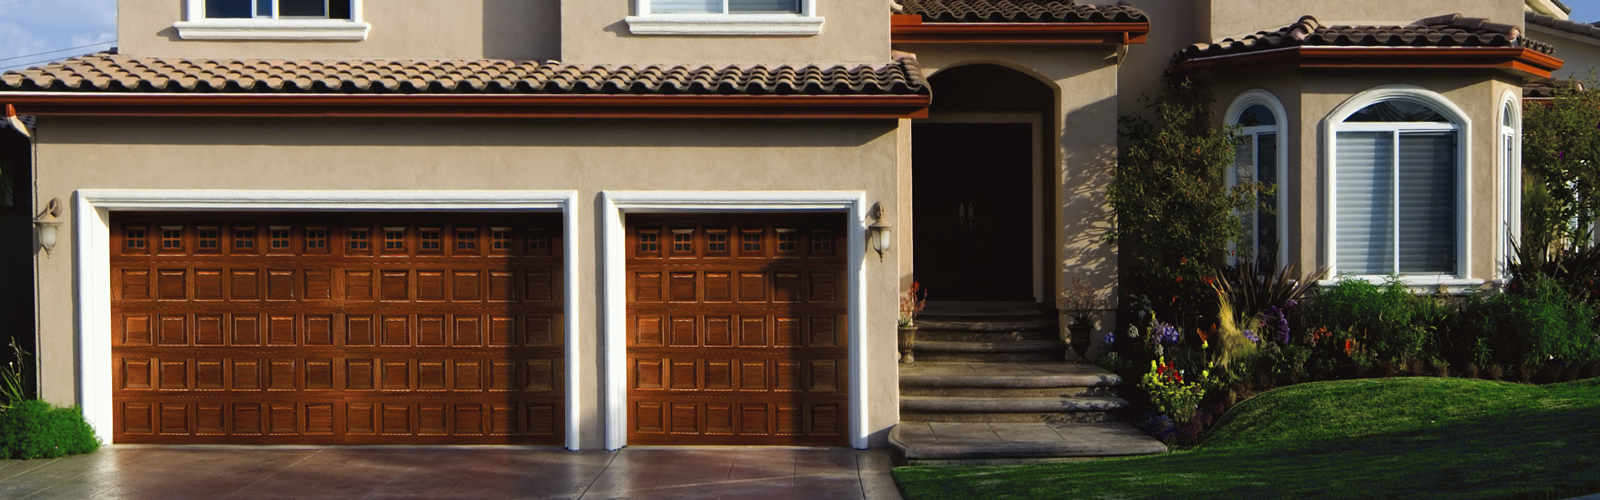 Overhead Door Company Of Conroe Garage Door Sales And